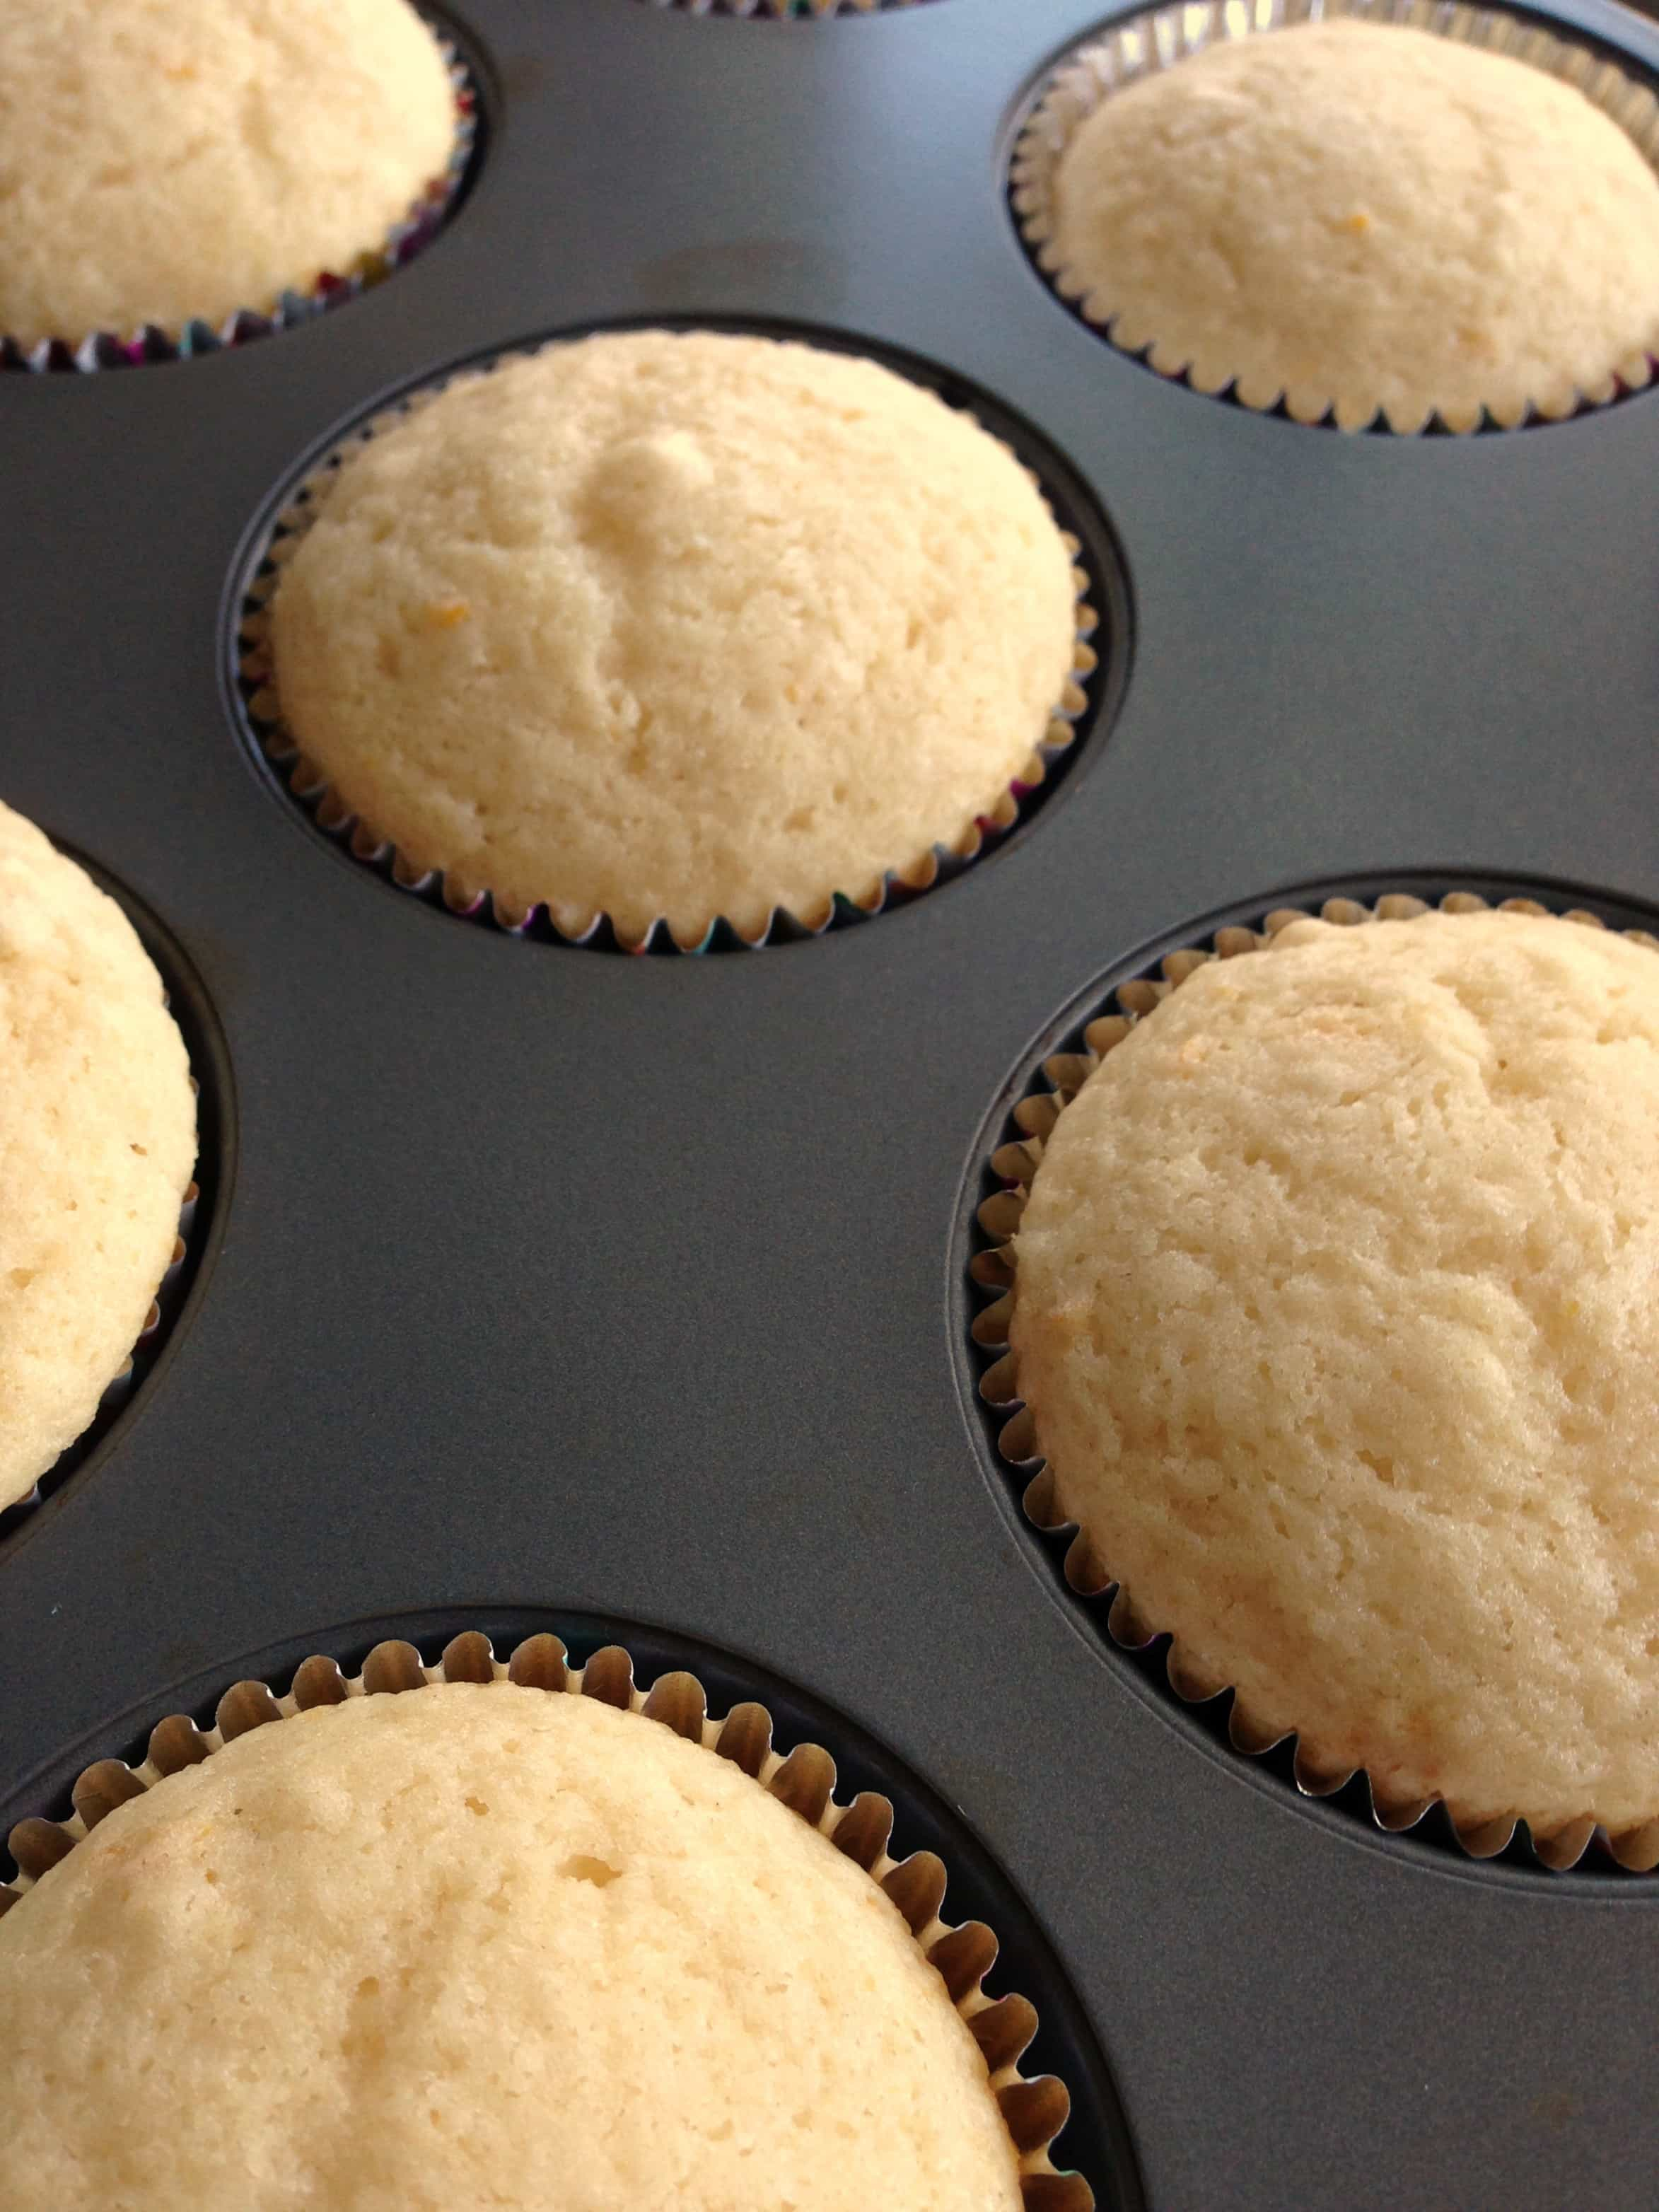 Baked lemon cupcakes in a muffin tin.